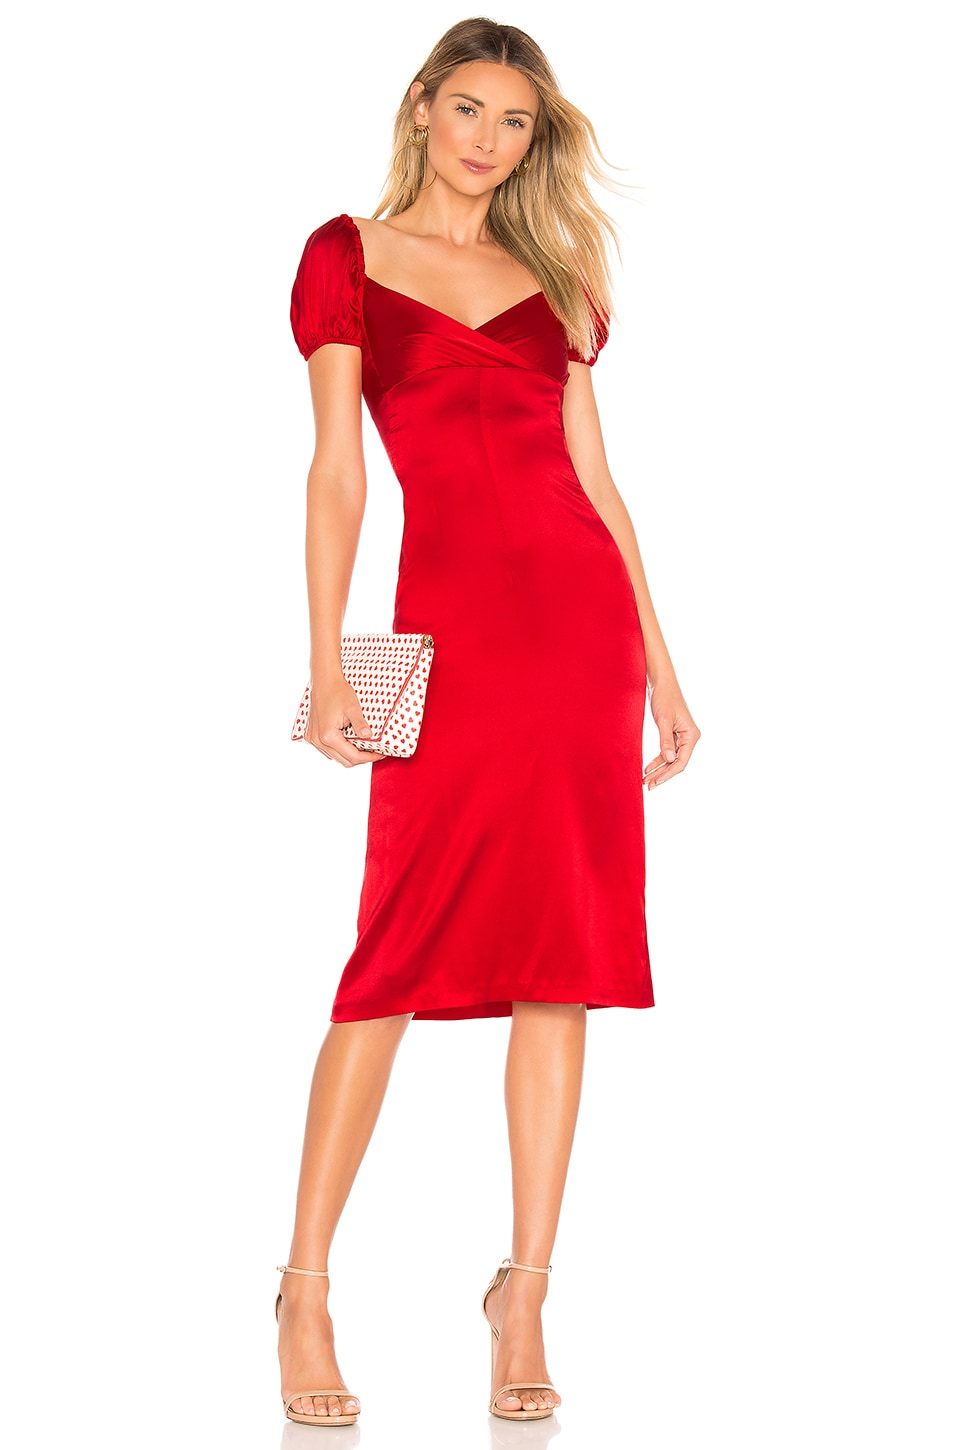 Alexis Cadiz Dress in Red